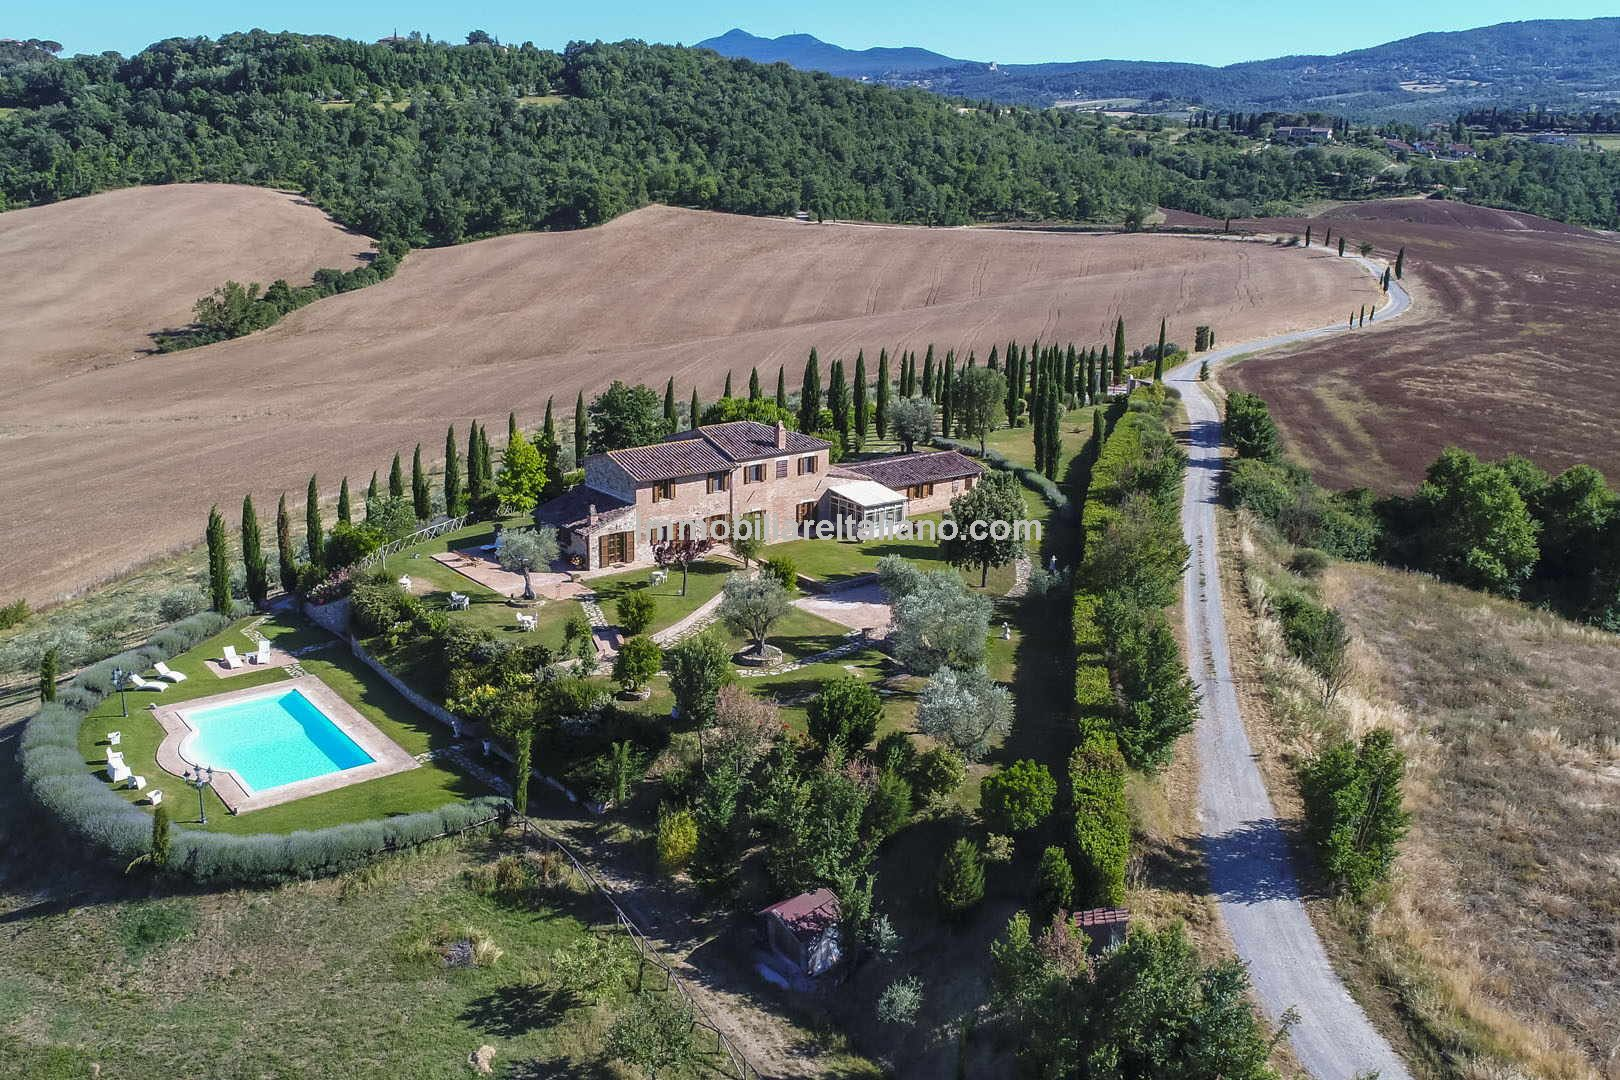 Restored 6-bed traditional Tuscan farmhouse, swimming pool, olive grove (180 trees) and a small 12-row vineyard located near to Chiusi in the Siena province of Tuscany. Nice private property but not too far from town. Ideal large home or utilising part of the property for holiday accommodation.